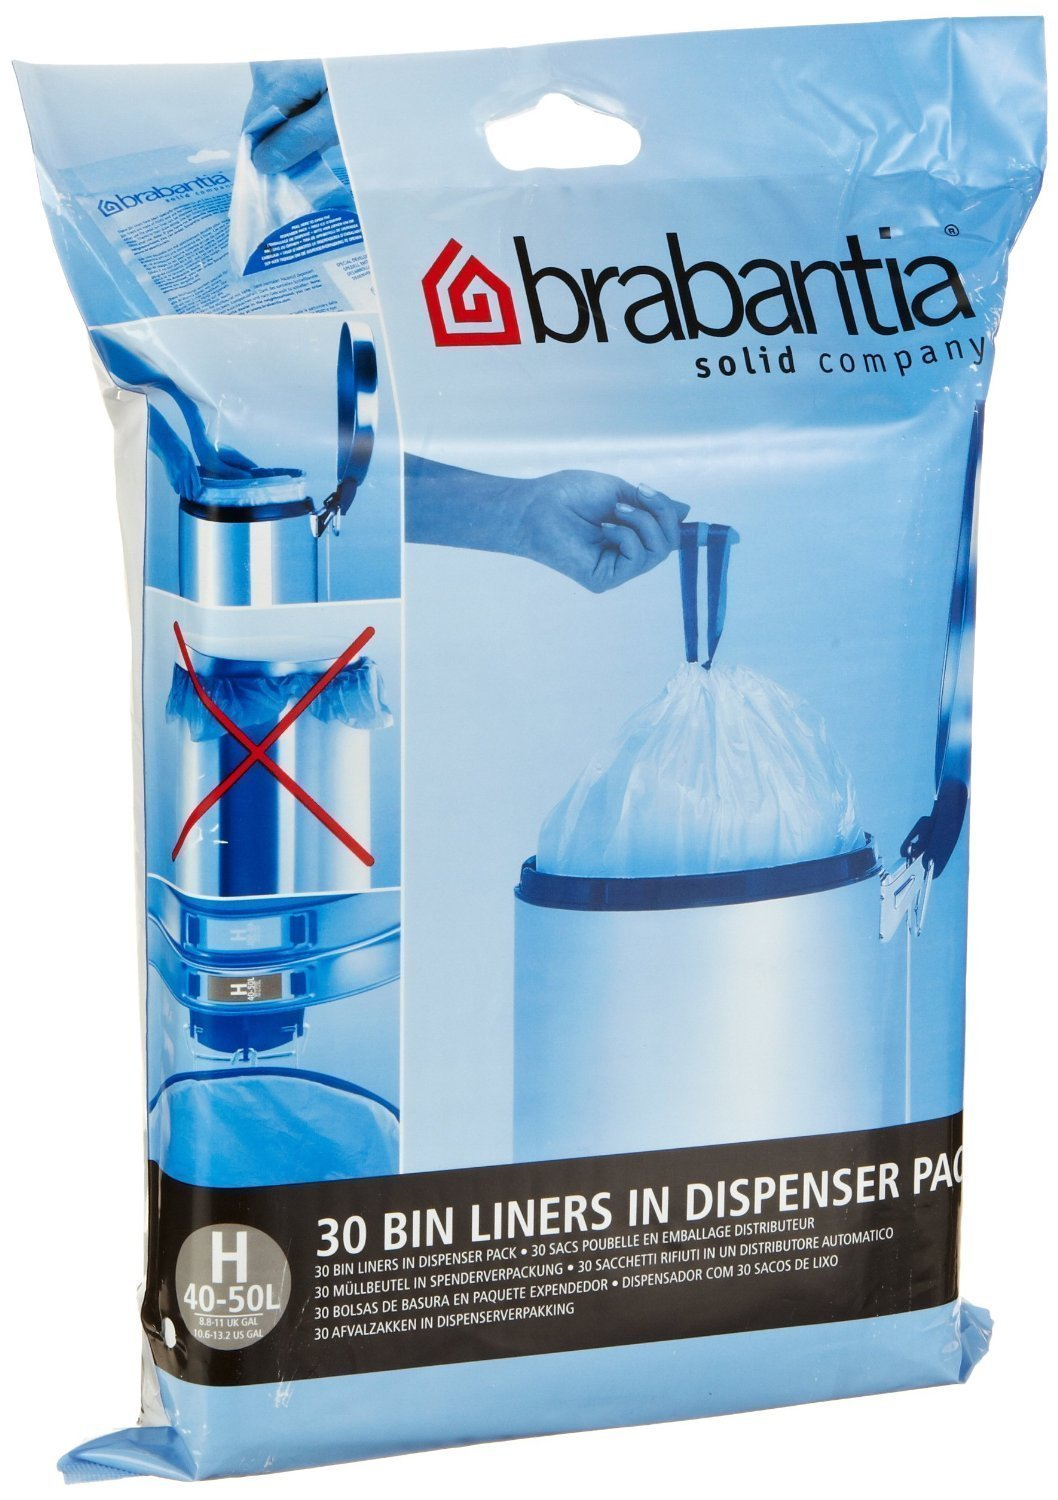 Amazon.com: Brabantia Bin Liner H,40-50 Litre-40 Bags (1) by Brabantia: Home & Kitchen